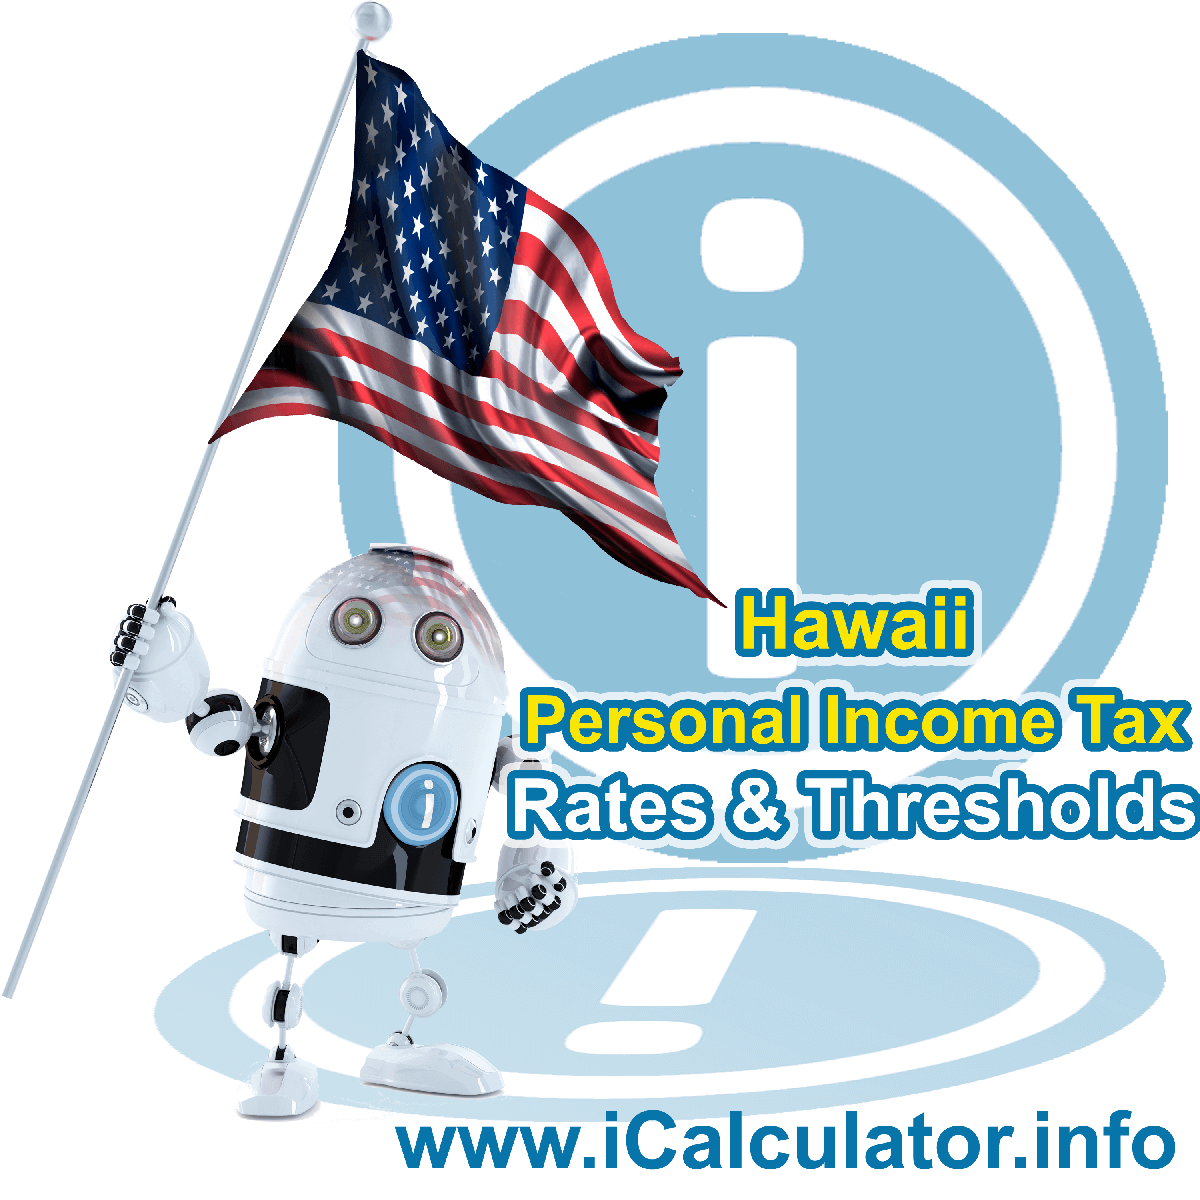 Hawaii State Tax Tables 2019. This image displays details of the Hawaii State Tax Tables for the 2019 tax return year which is provided in support of the 2019 US Tax Calculator